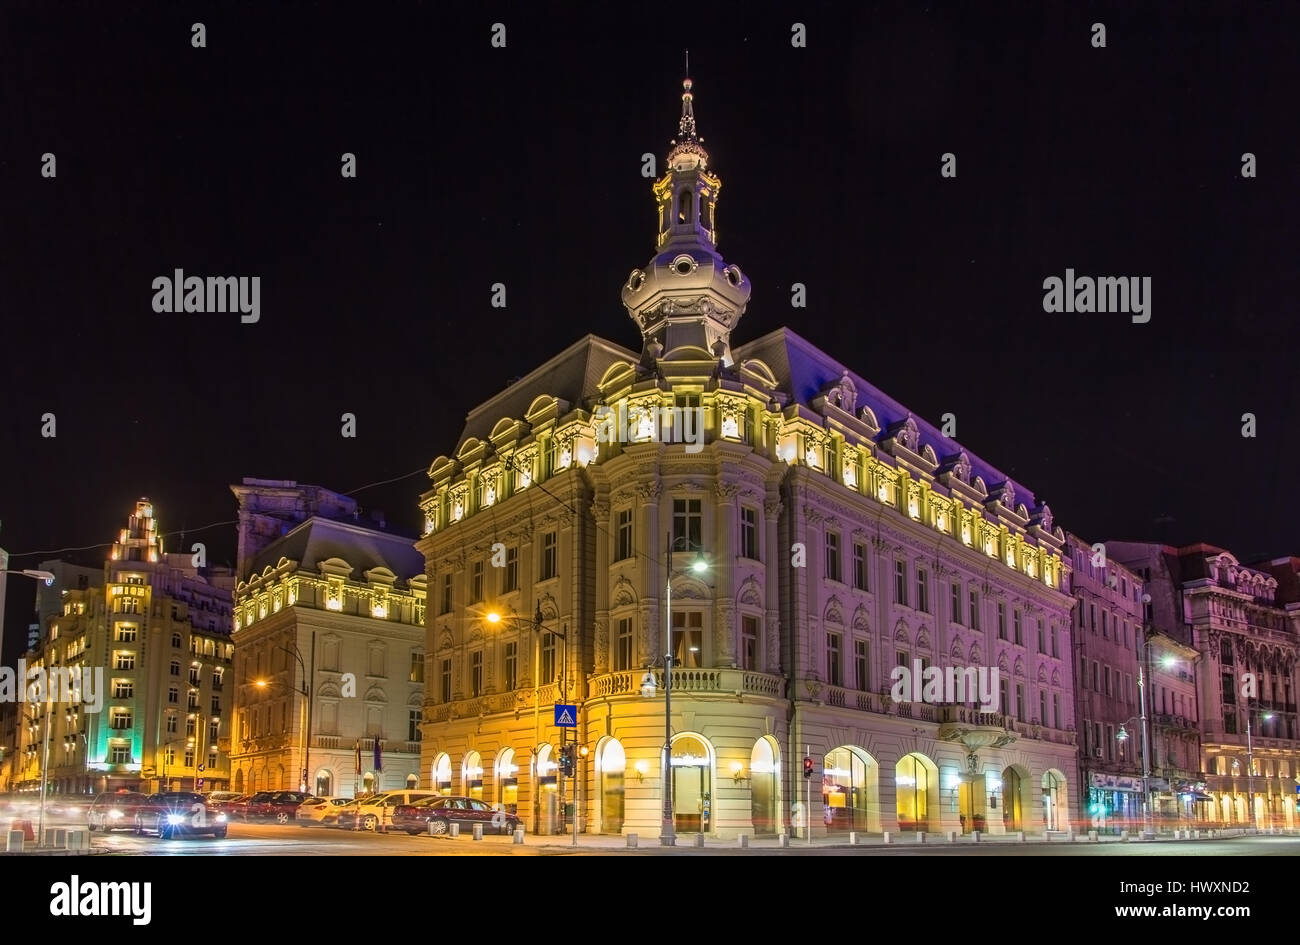 Buildings in Bucharest city center - Romania - Stock Image